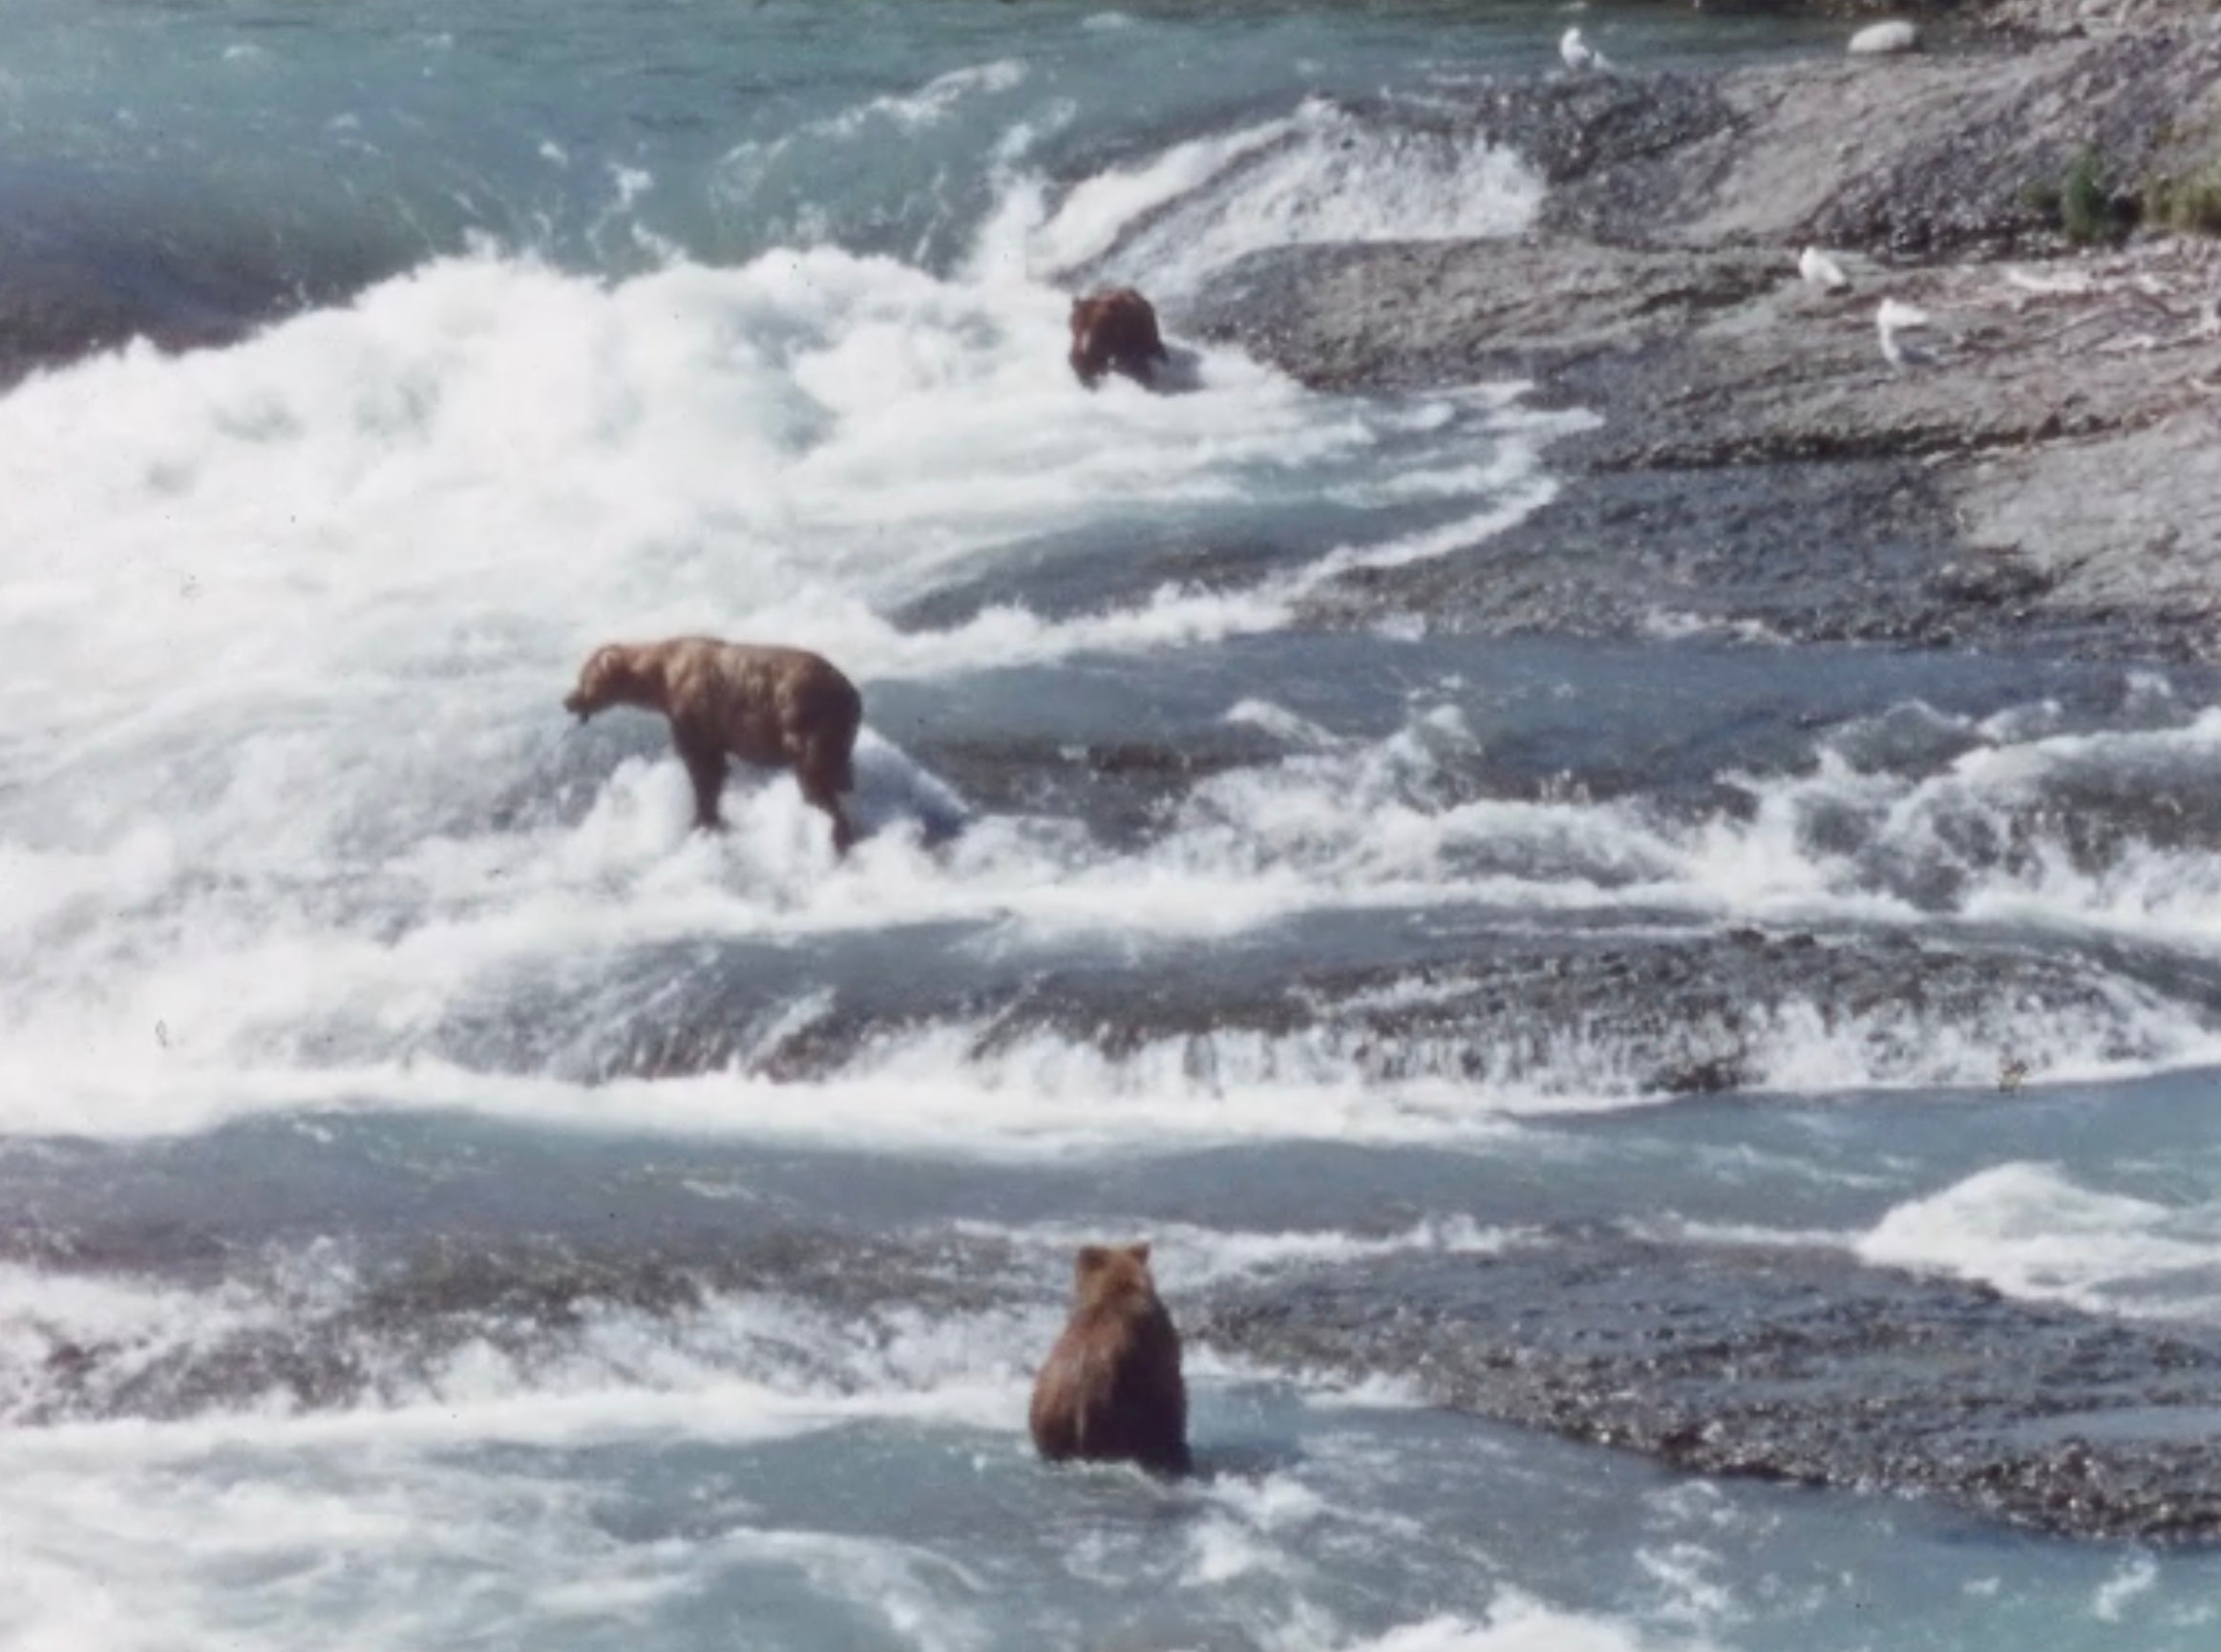 3 bears fishing in a river